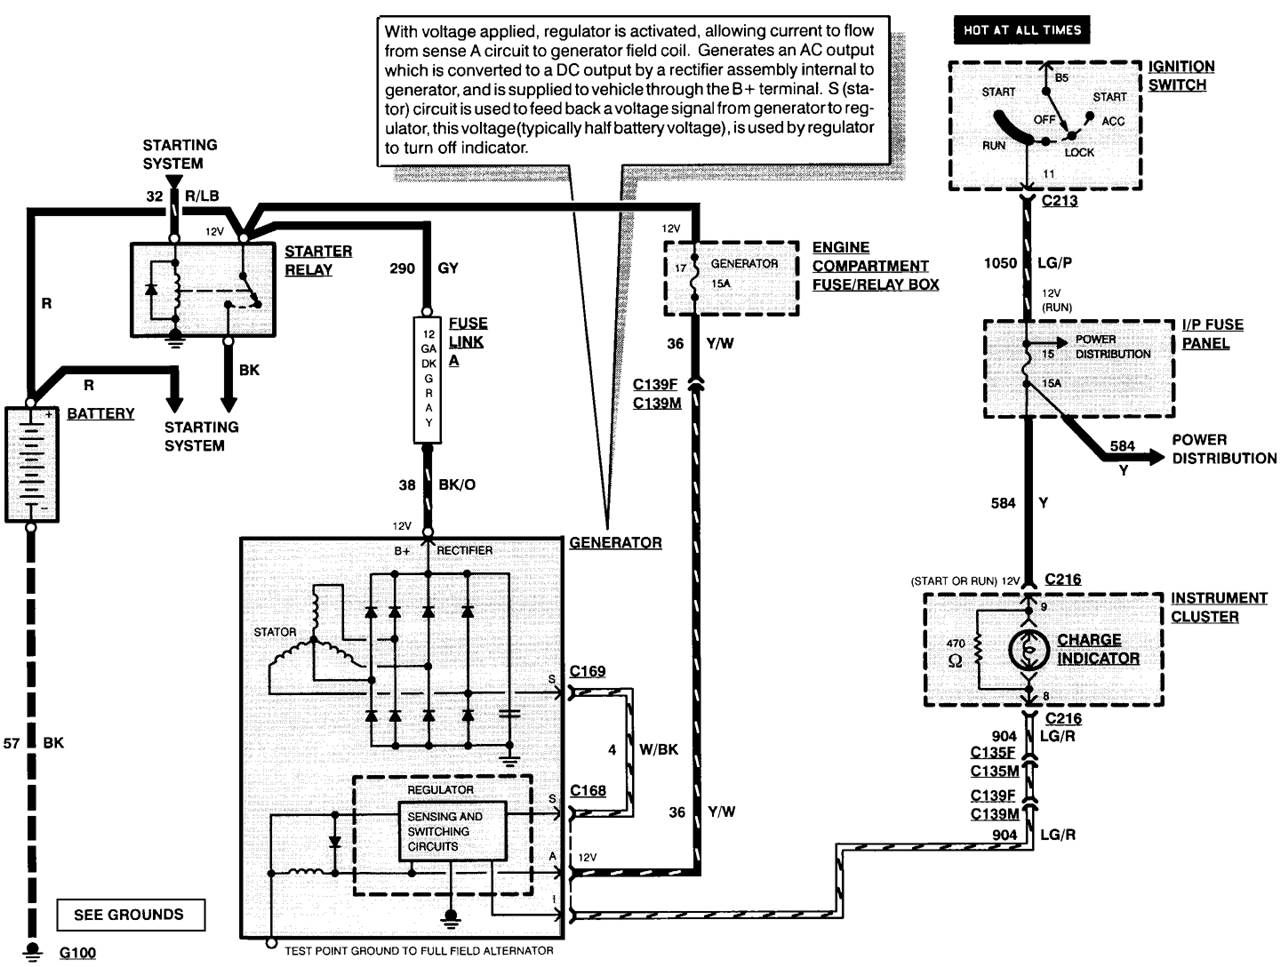 ac delco alternator wiring diagram wiring diagrams and schematics alternator wiring diagrams eljac